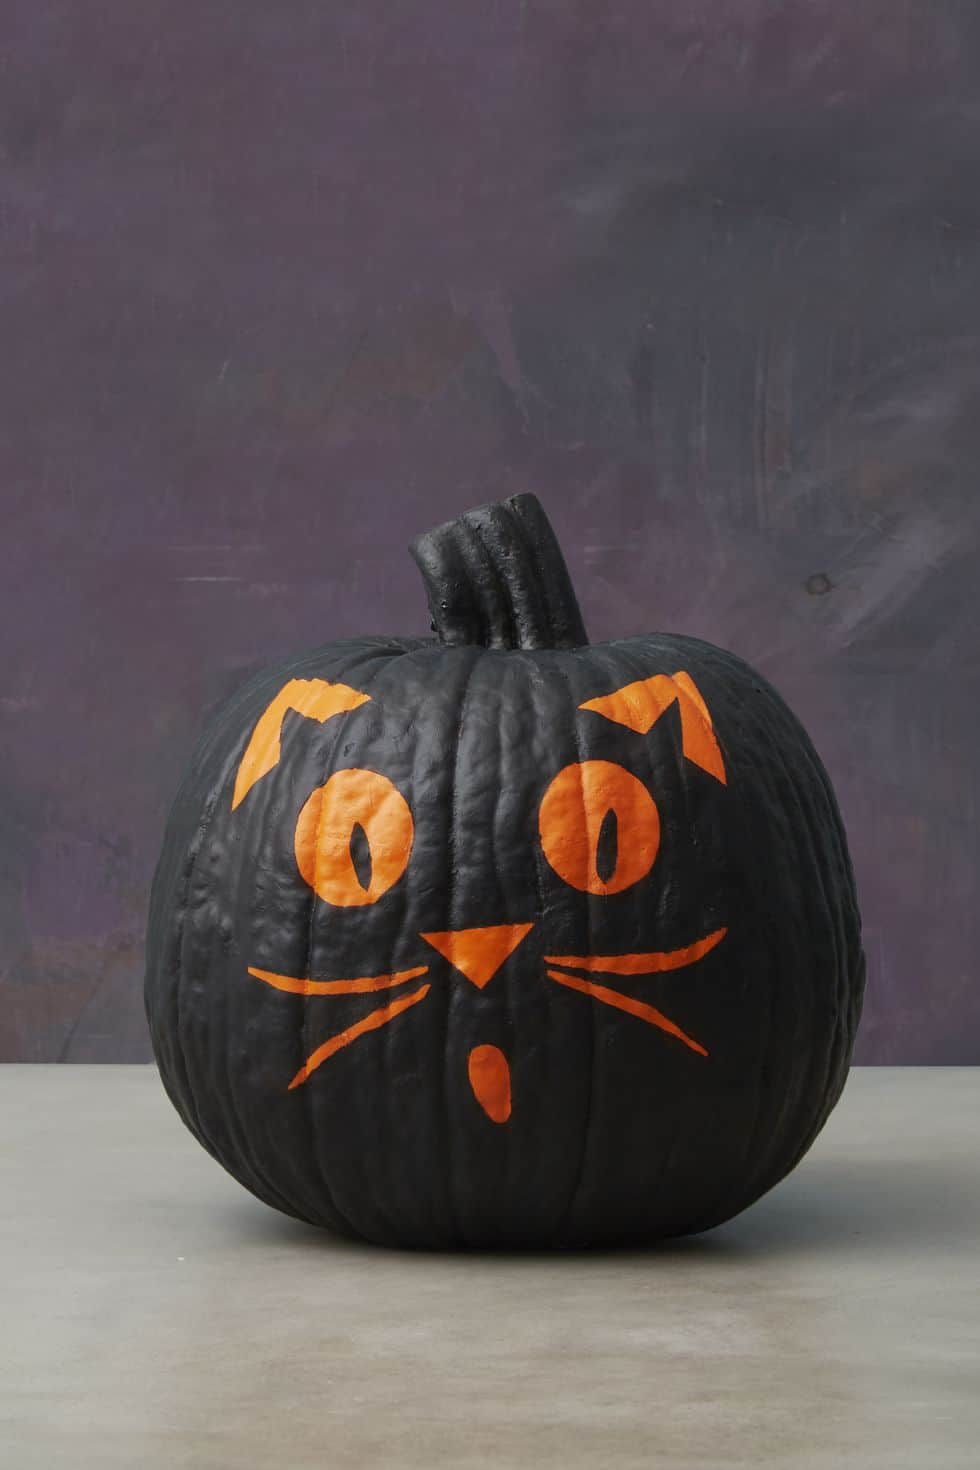 Scaredy cat painted Halloween pumpkin